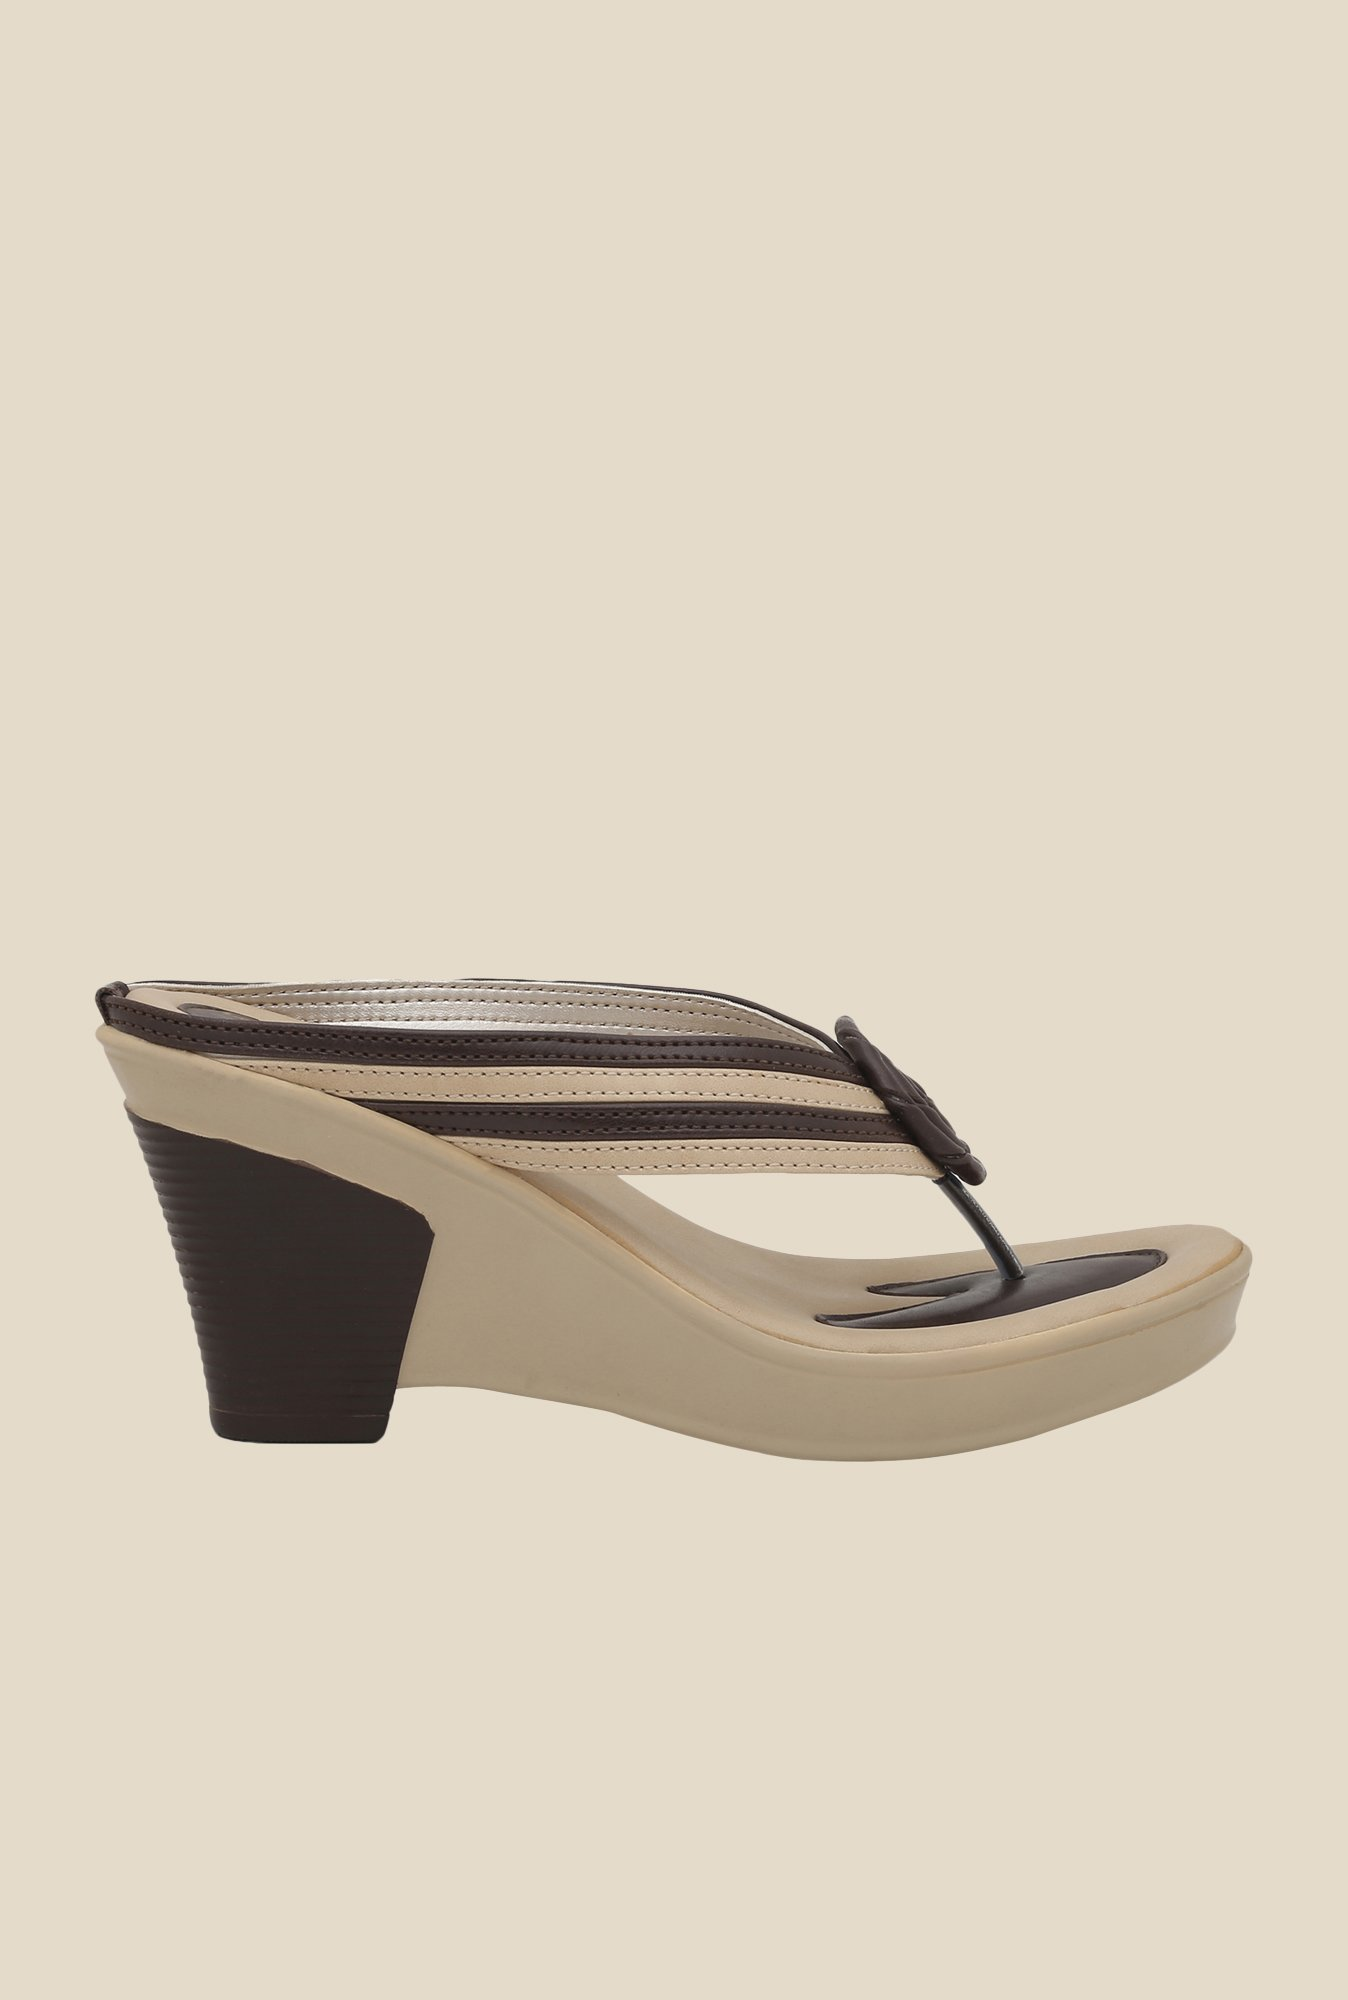 La Briza Brown & Beige Wedge Sandals